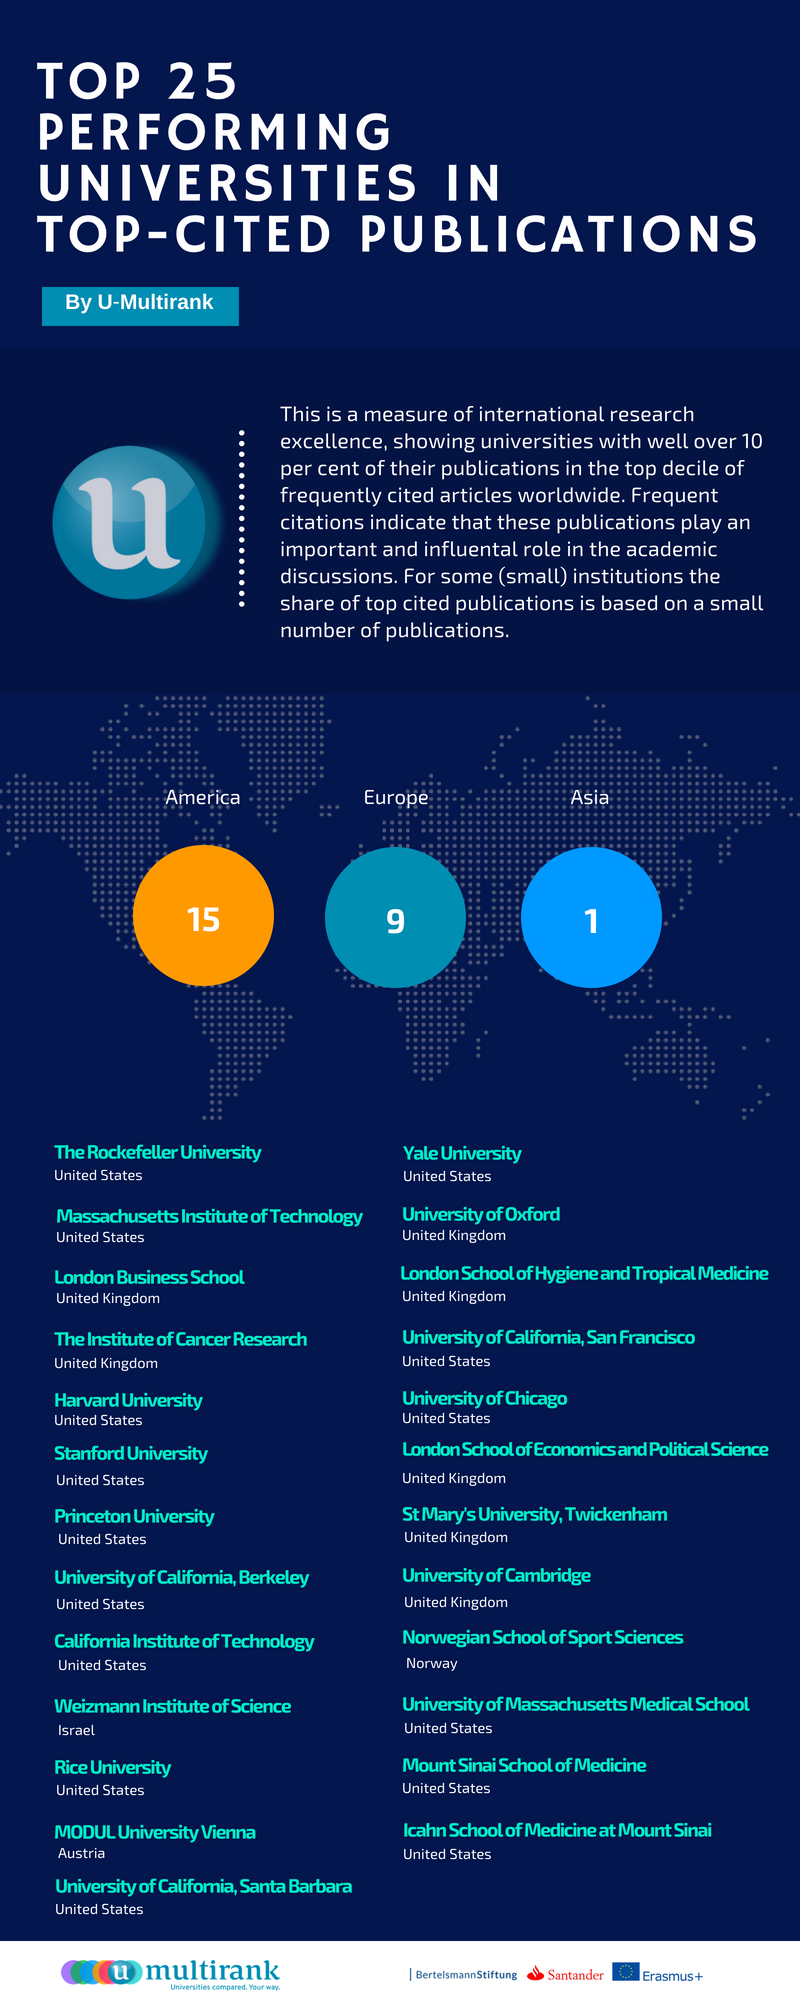 Top 25 Performing Universities in Top-Cited Publications